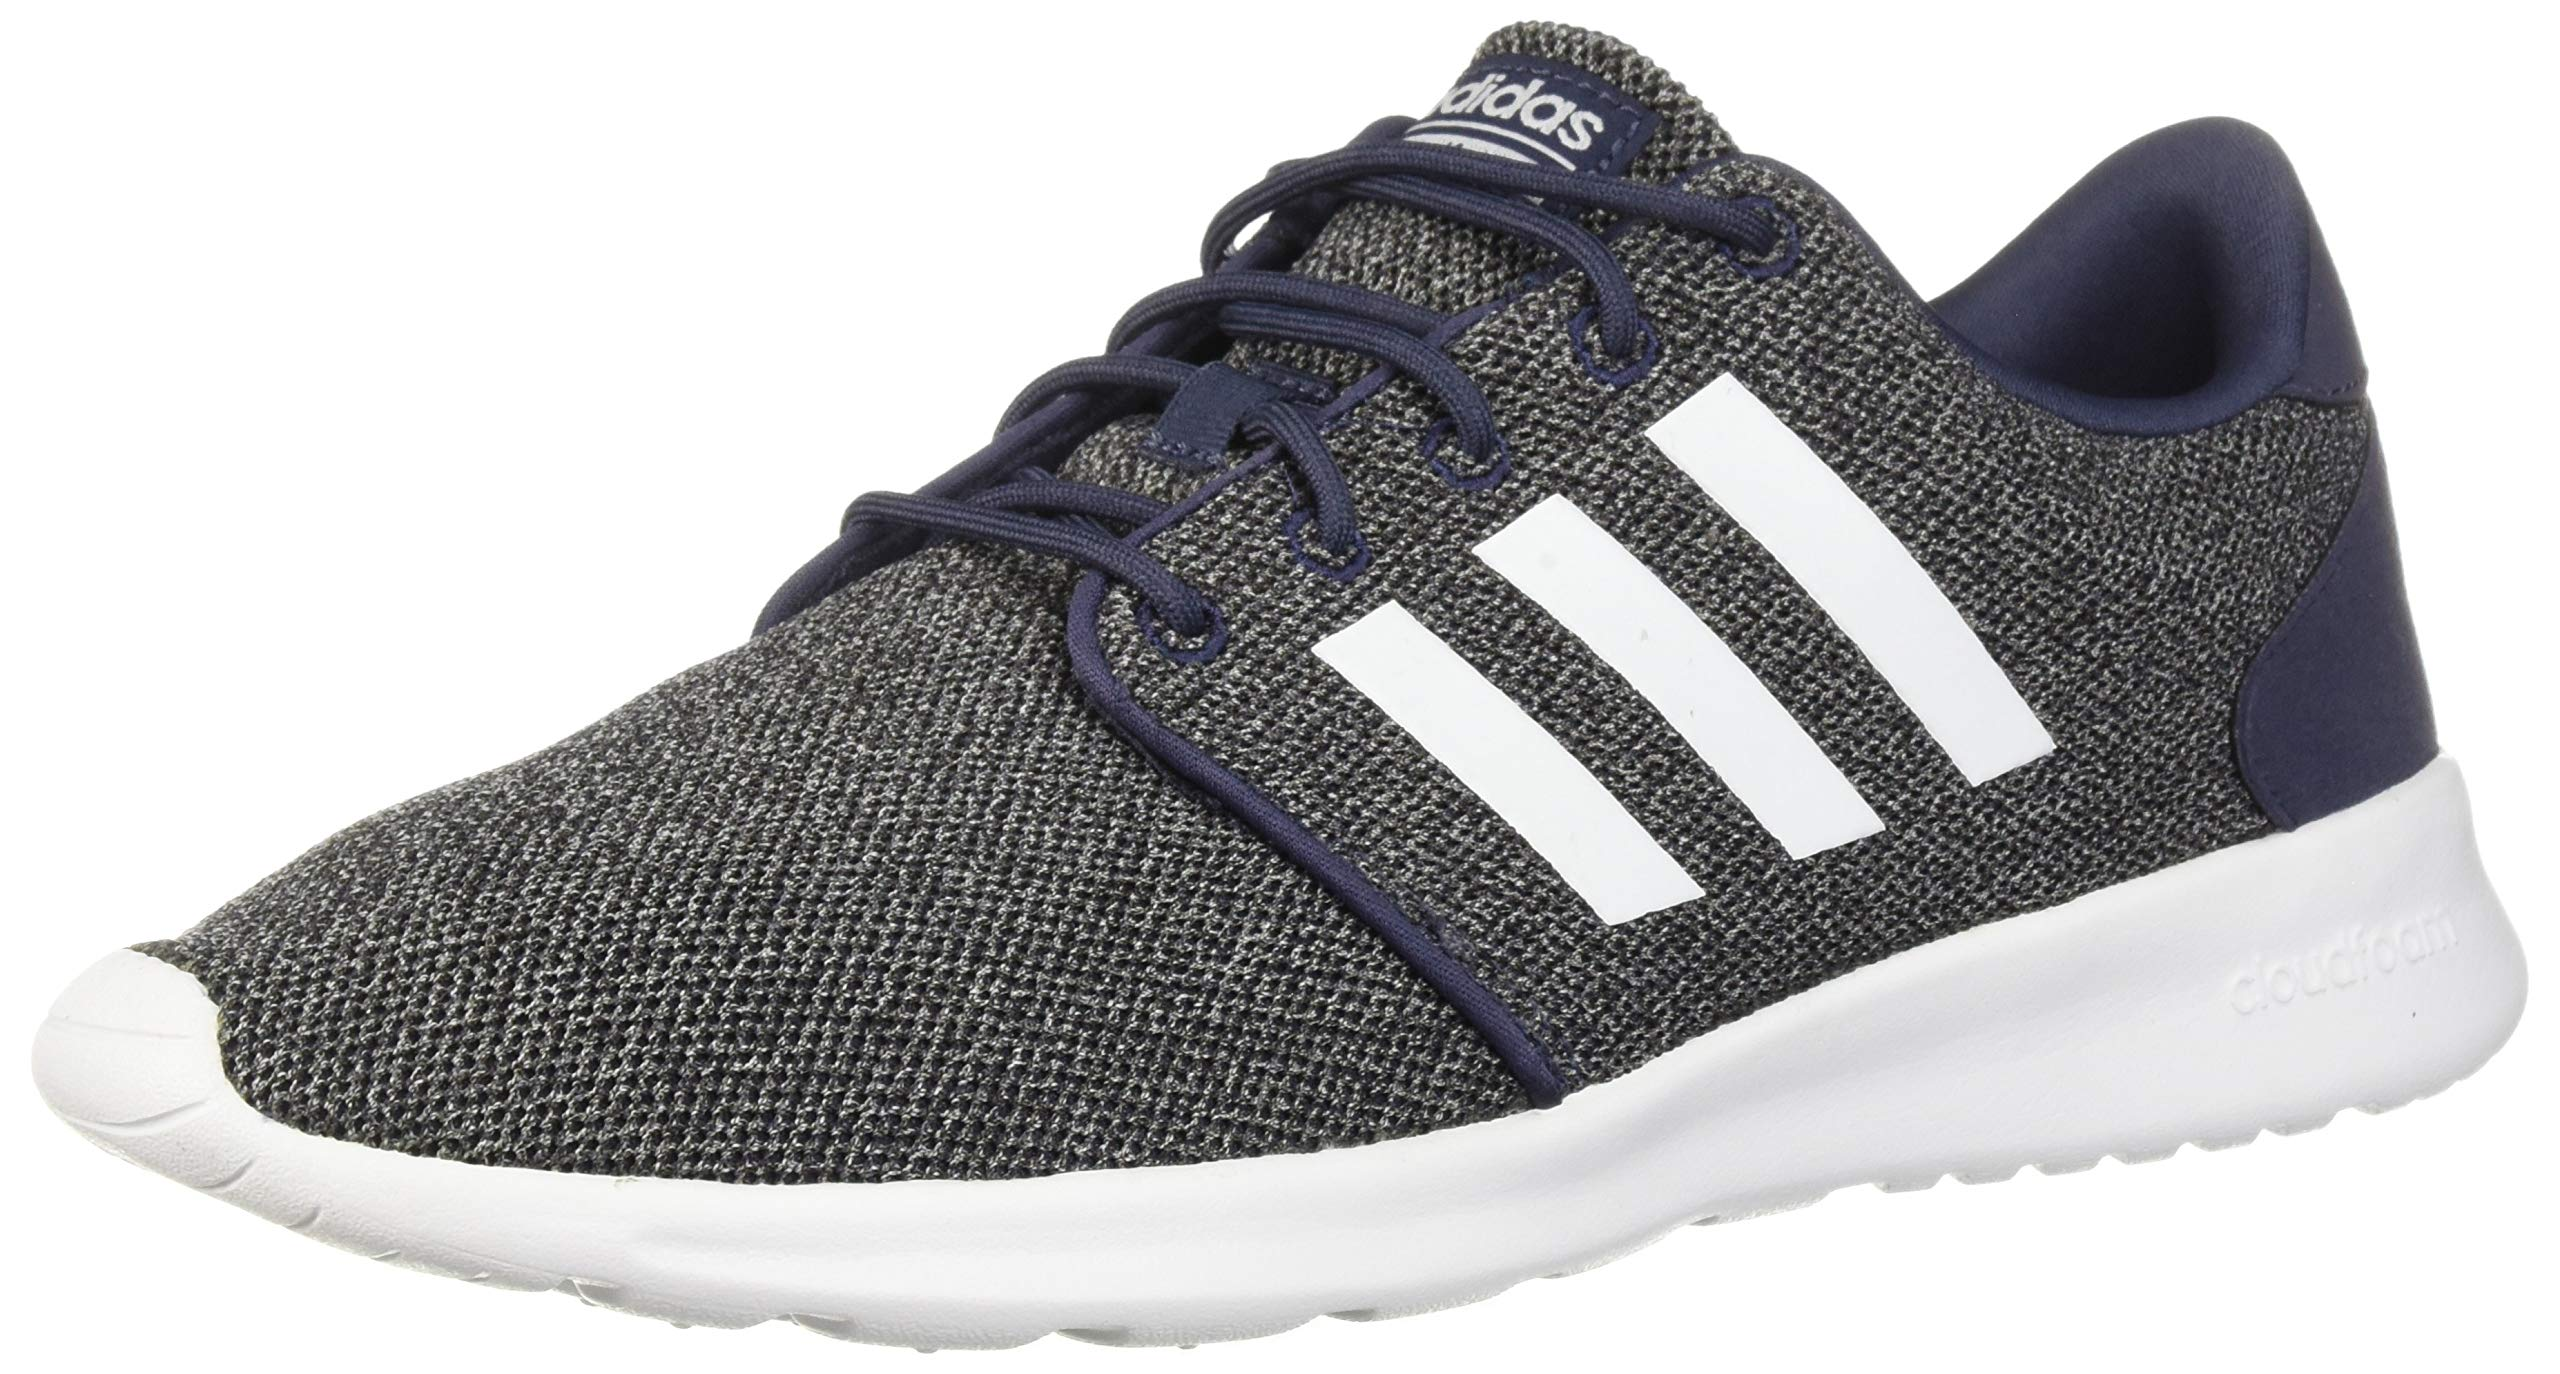 adidas Women's Cloudfoam QT Racer Running Shoe, Trace Blue/White/Black, 6.5 M US by adidas